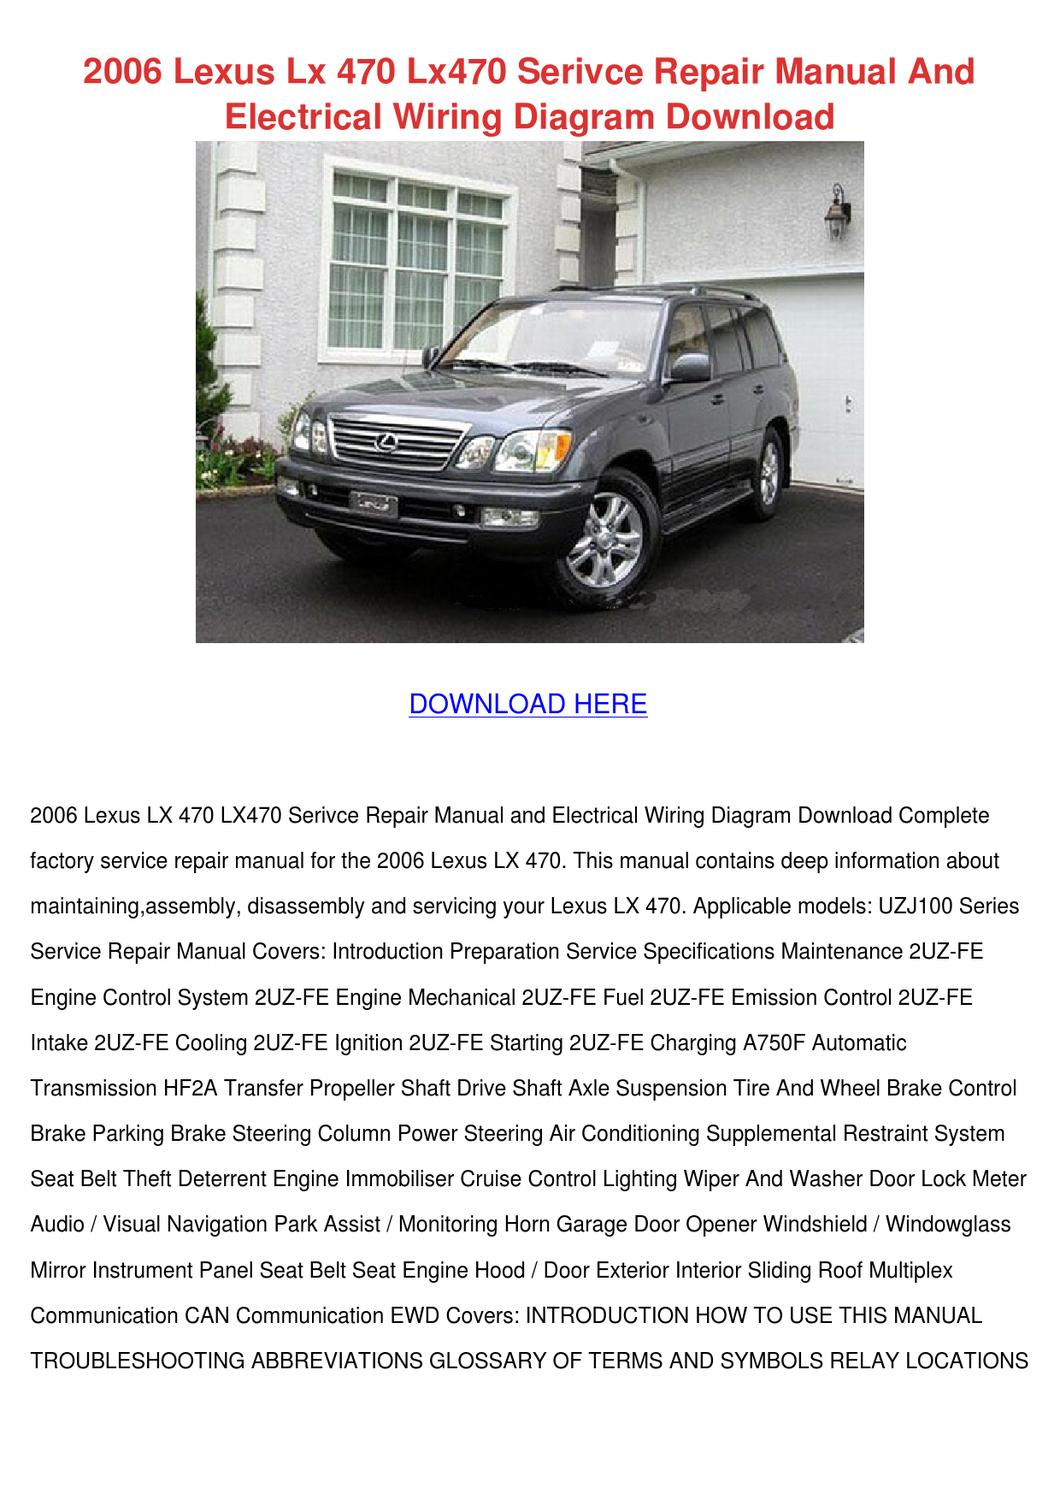 2006 Lexus Lx 470 Lx470 Serivce Repair Manual by Cassondra Santanna - issuu